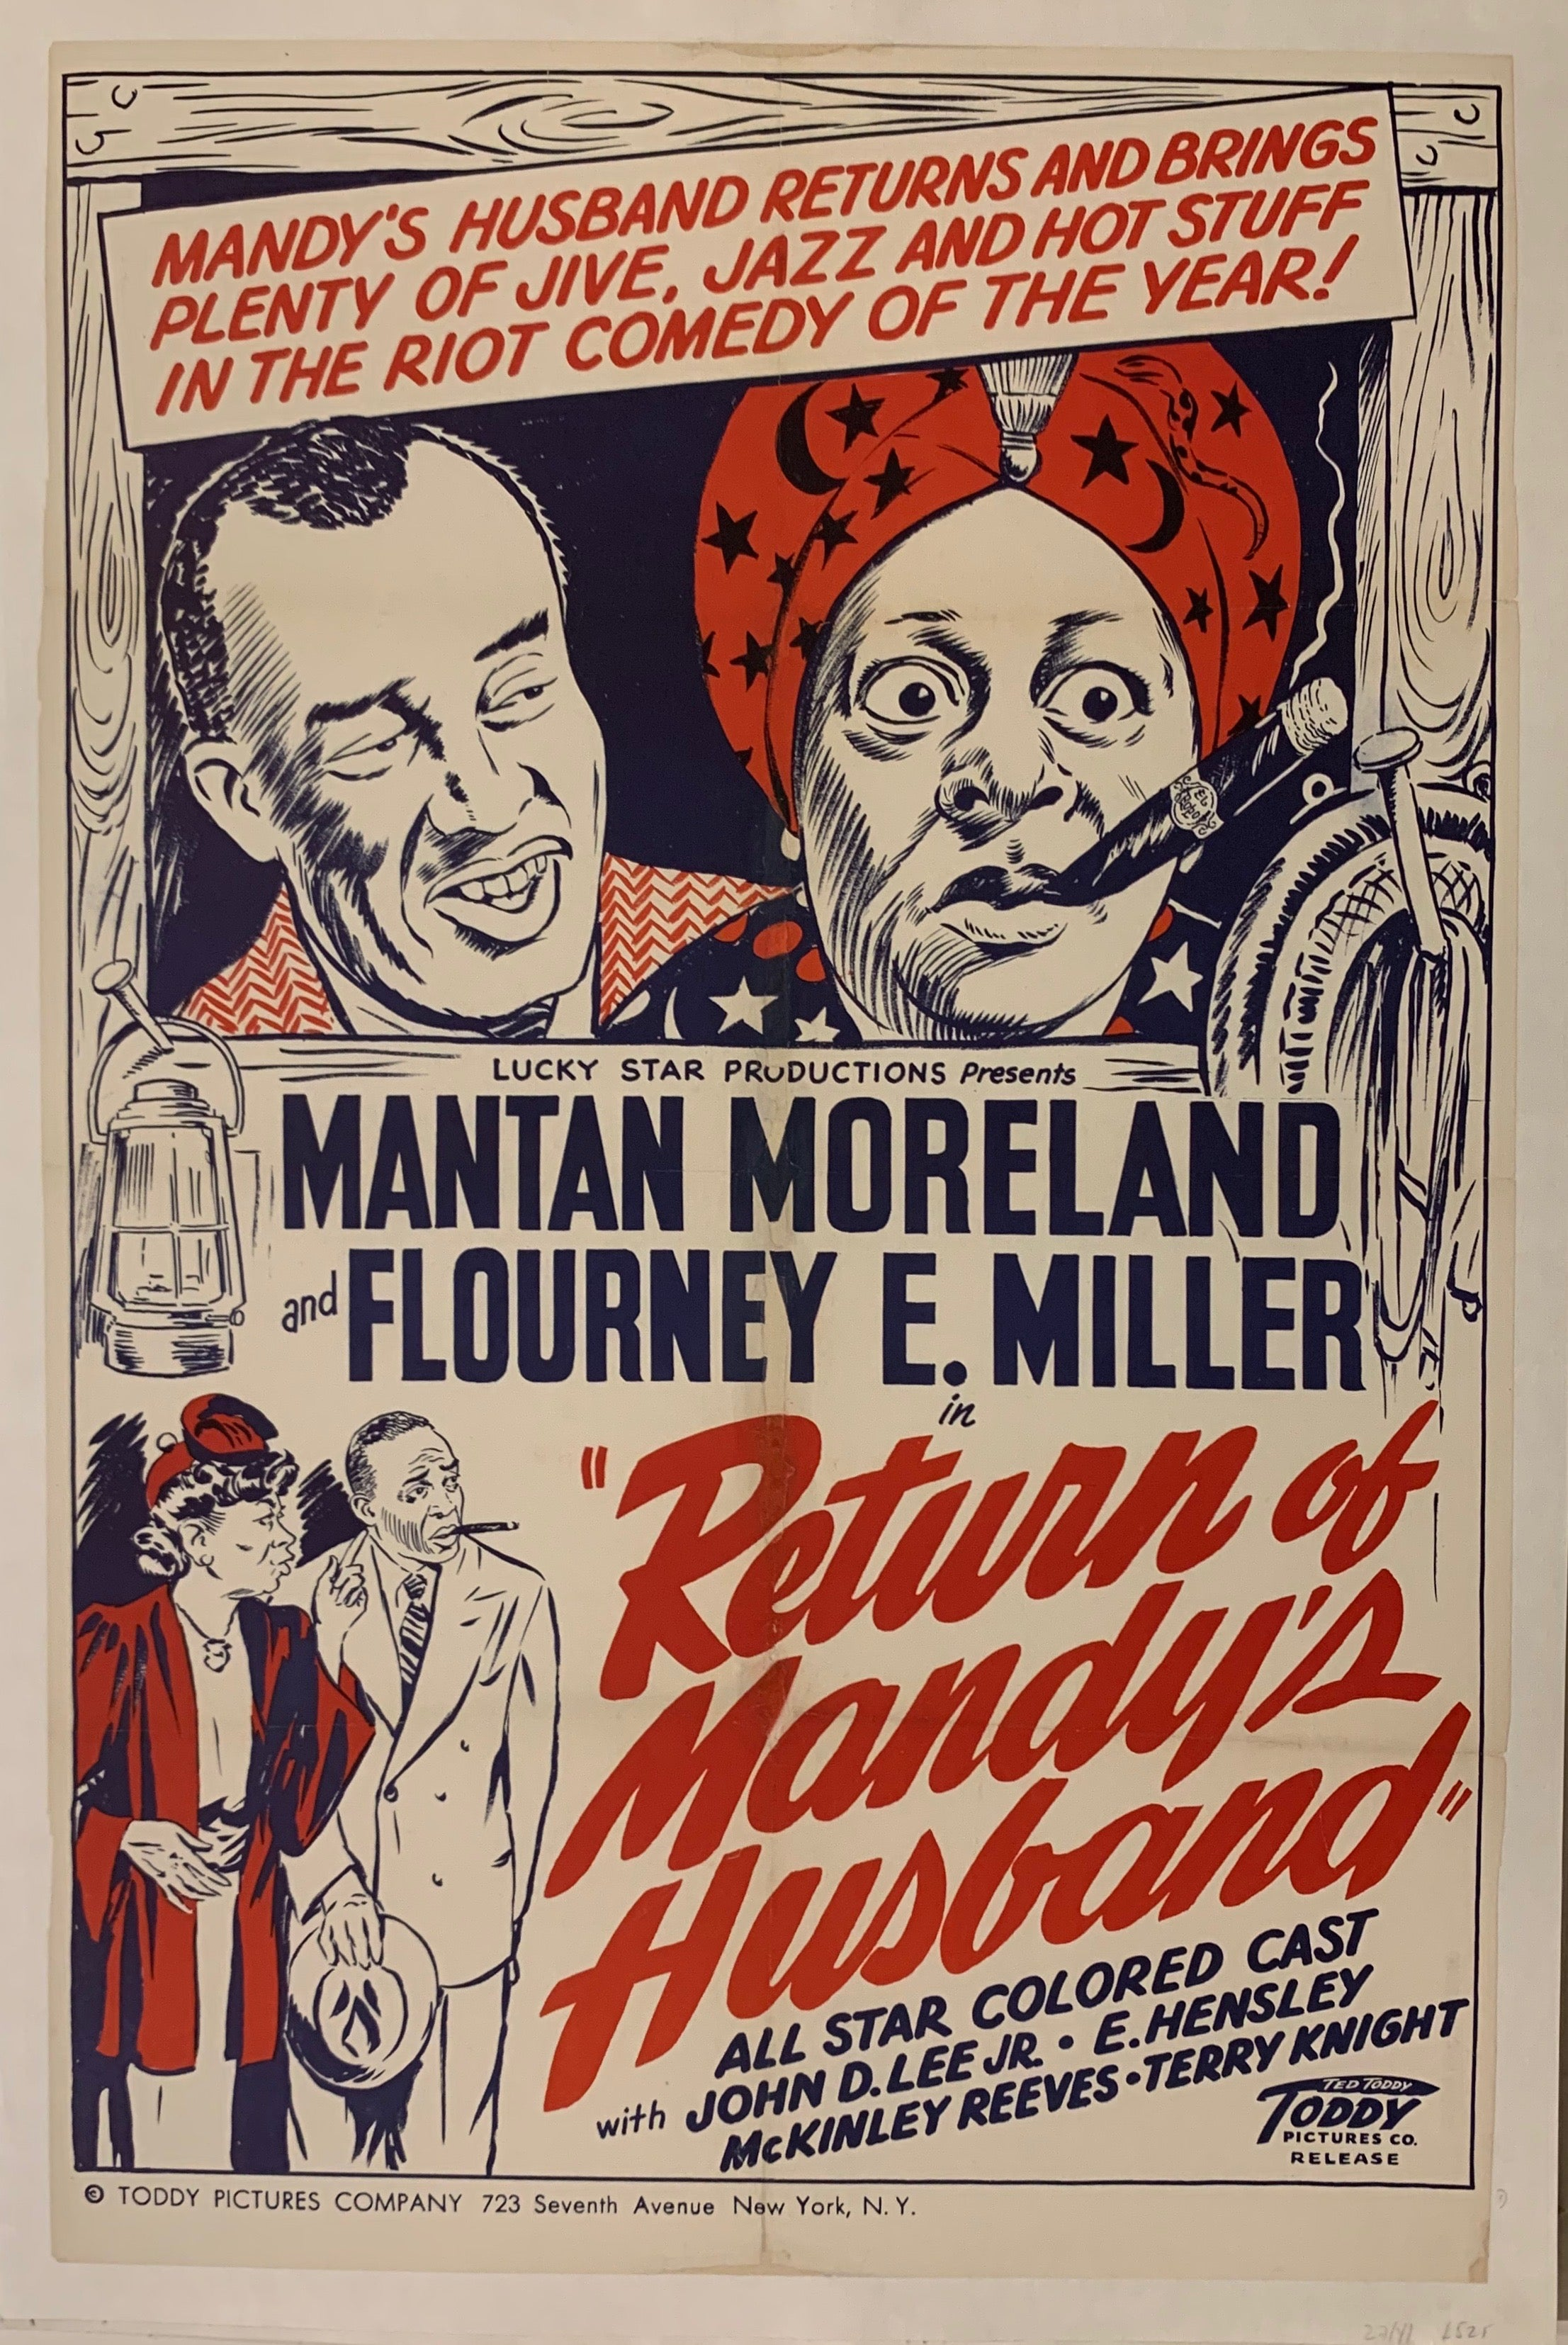 Return Of Mandy's Husband Film Poster